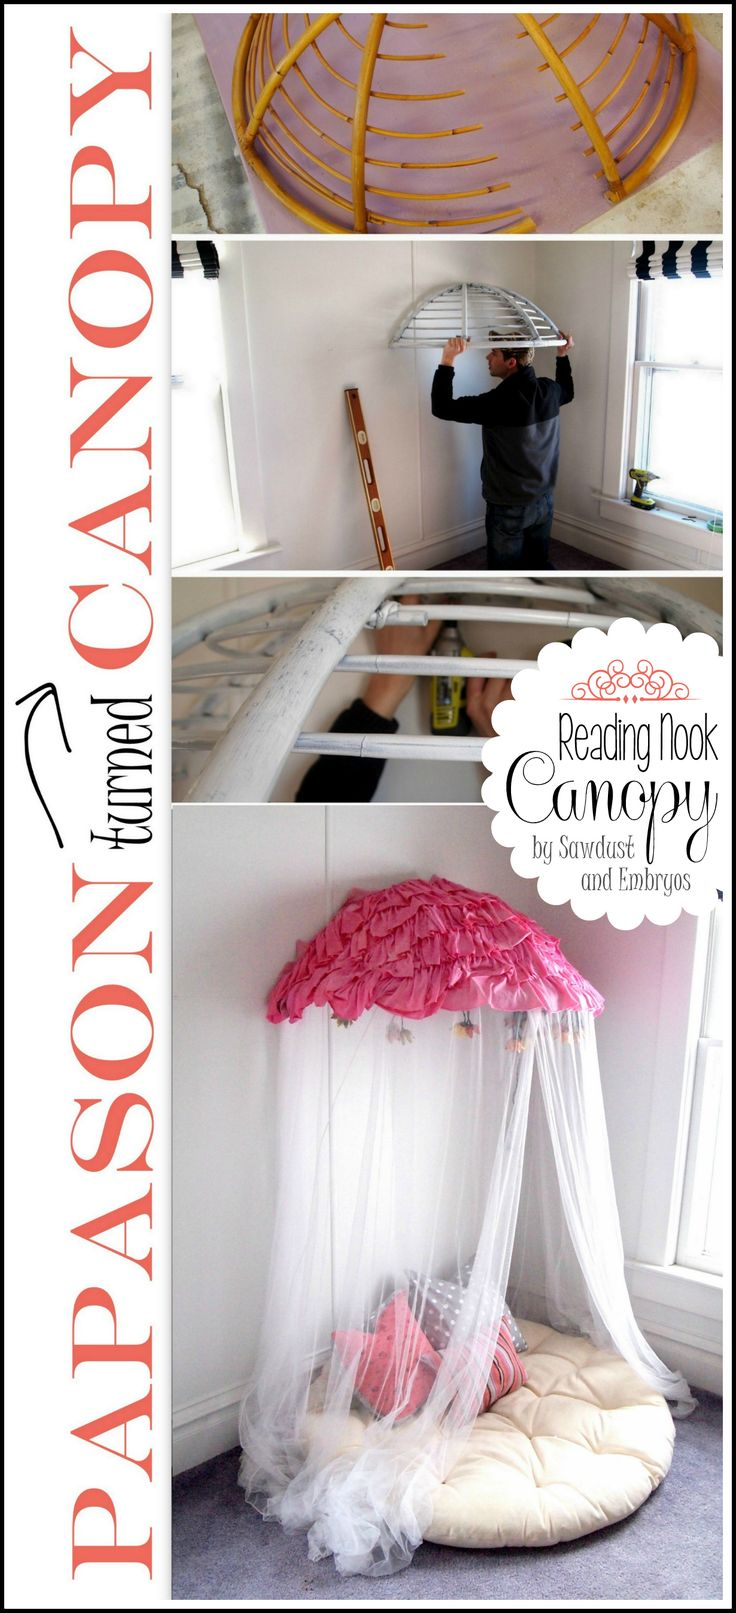 Have an old papason chair? Turn it into a fun canopy/reading nook for your littles! SO FUN! {Sawdust and Embryos}